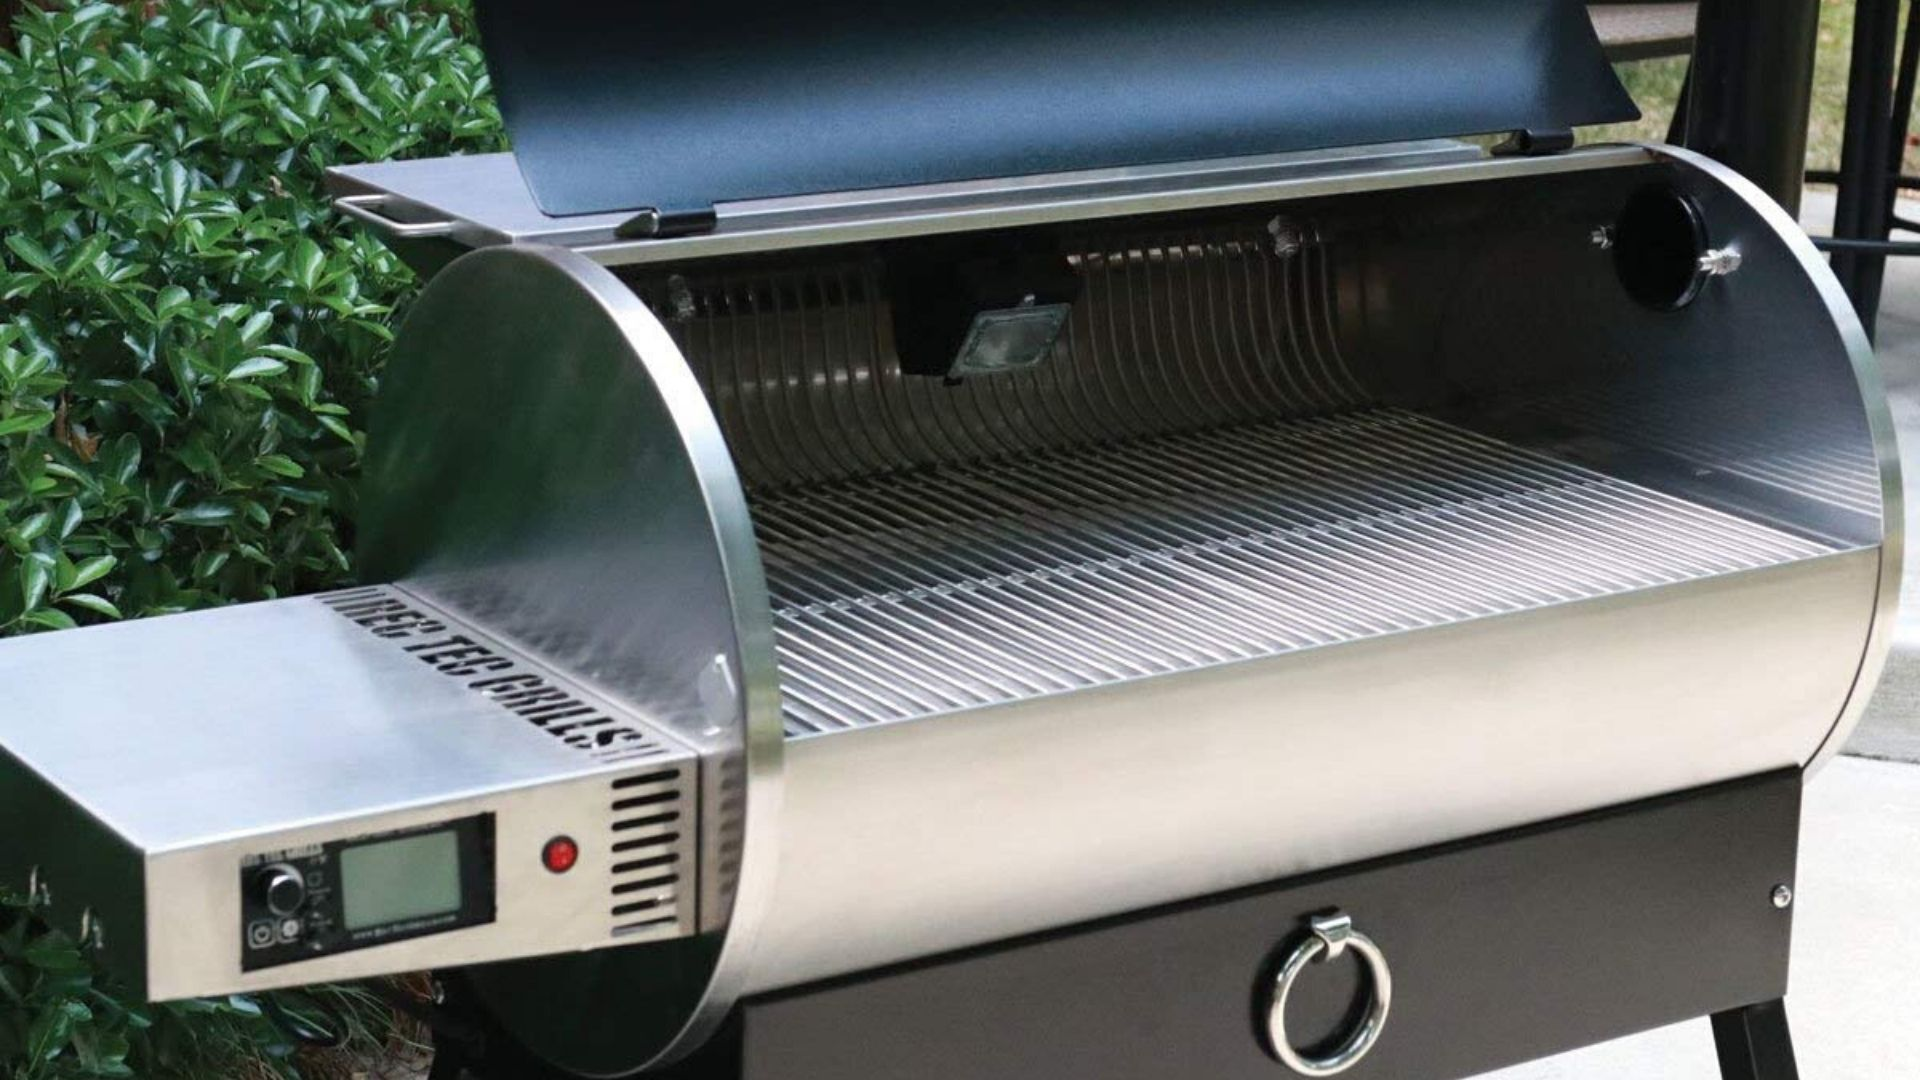 image of rec tec grills rt-700 stainless steel grates